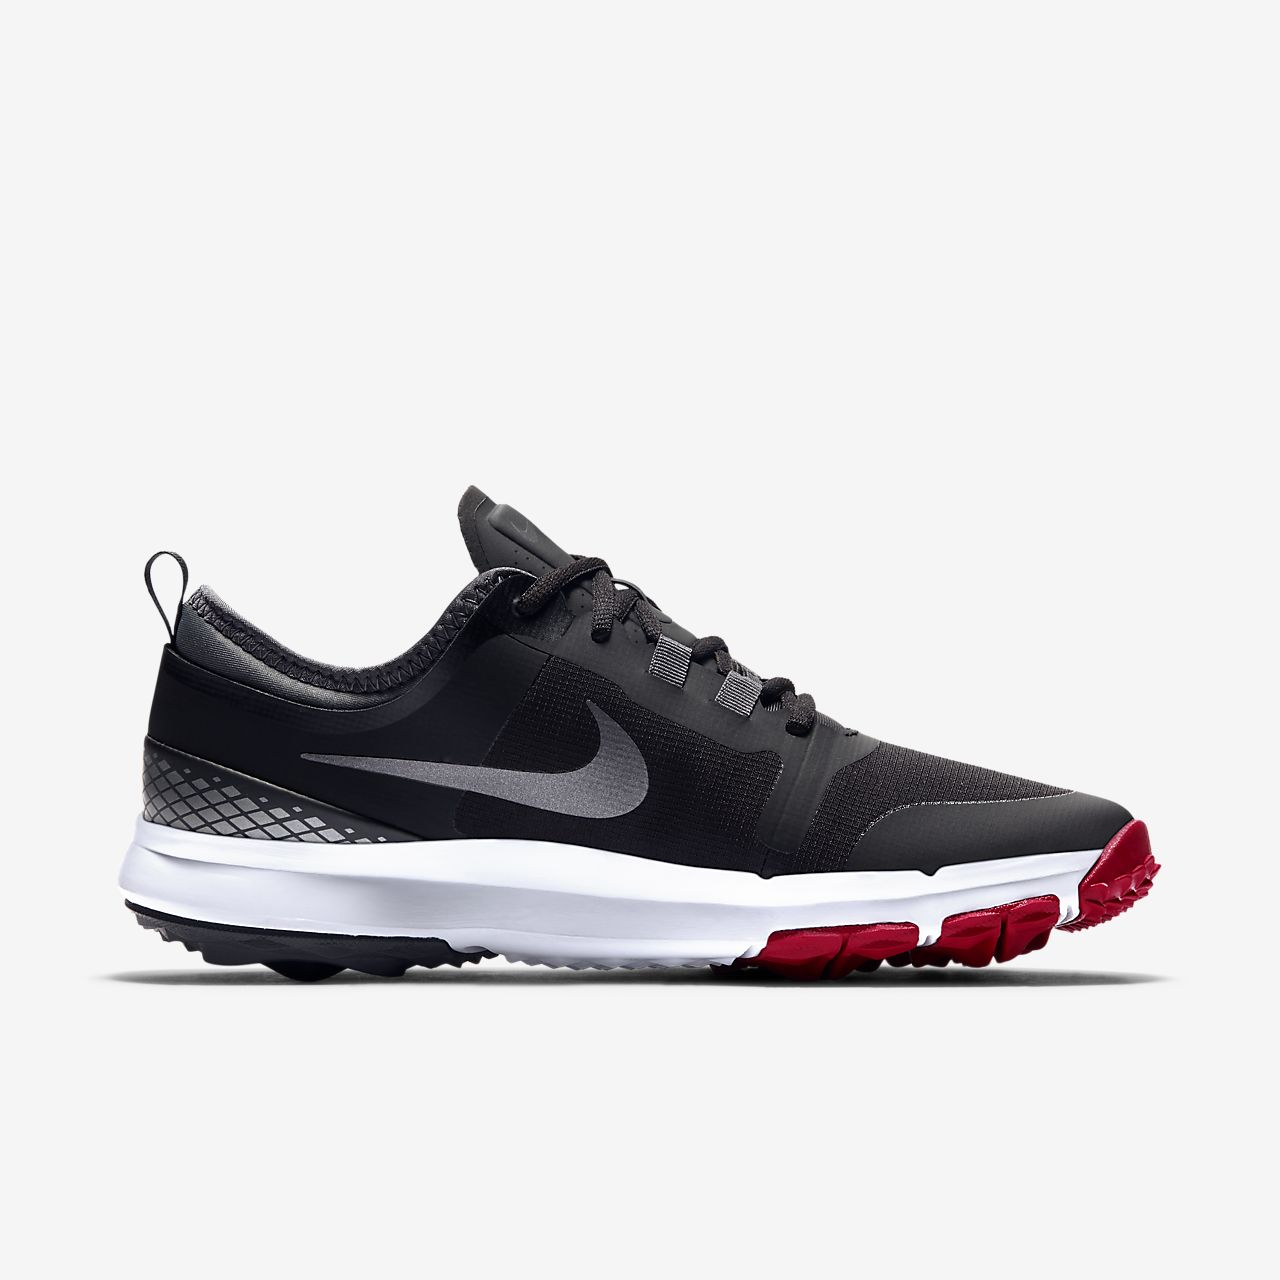 ec207870c95 Nike FI Impact 2 Men s Golf Shoe. Nike.com GB